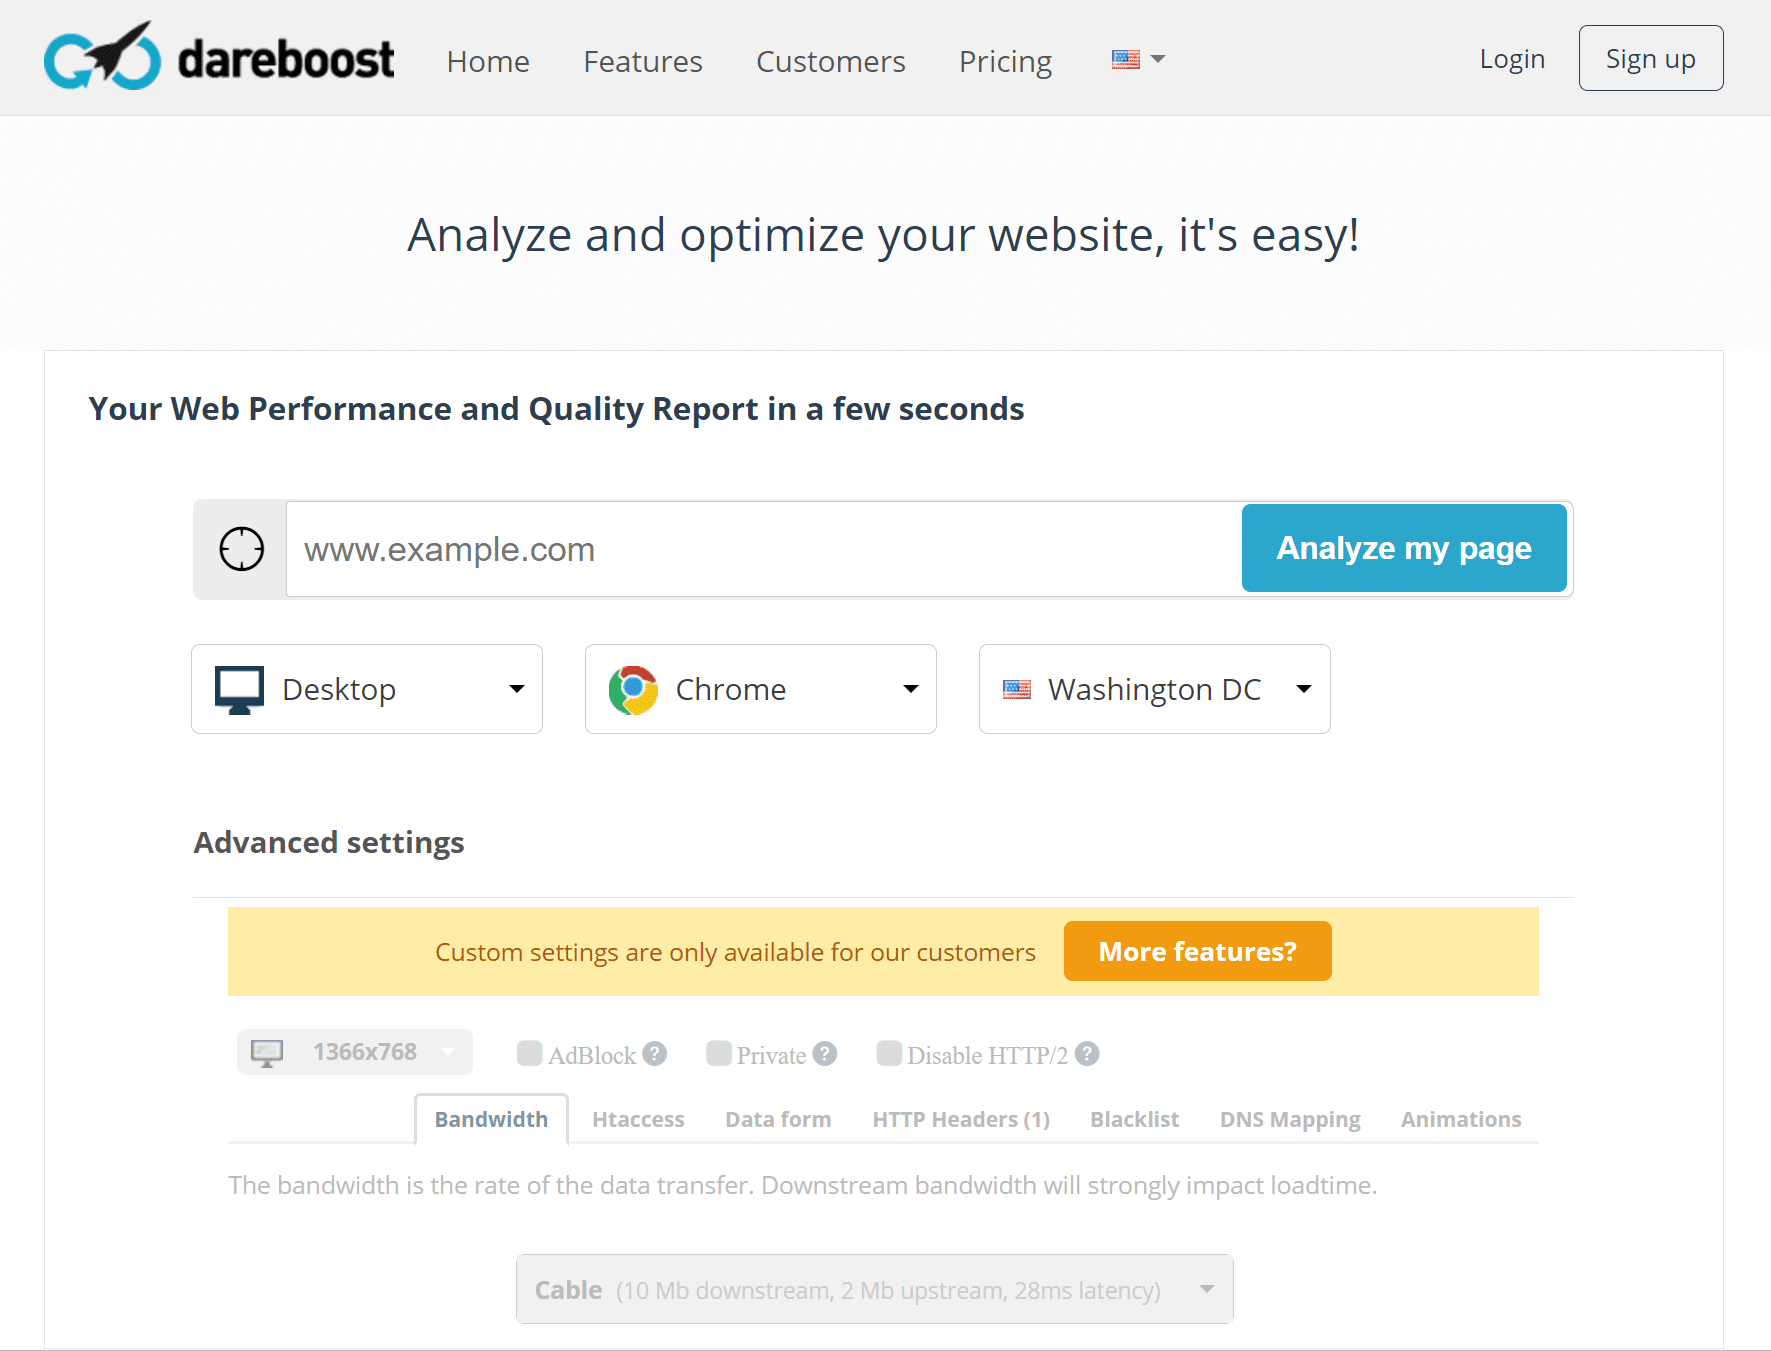 dareboost website speed test